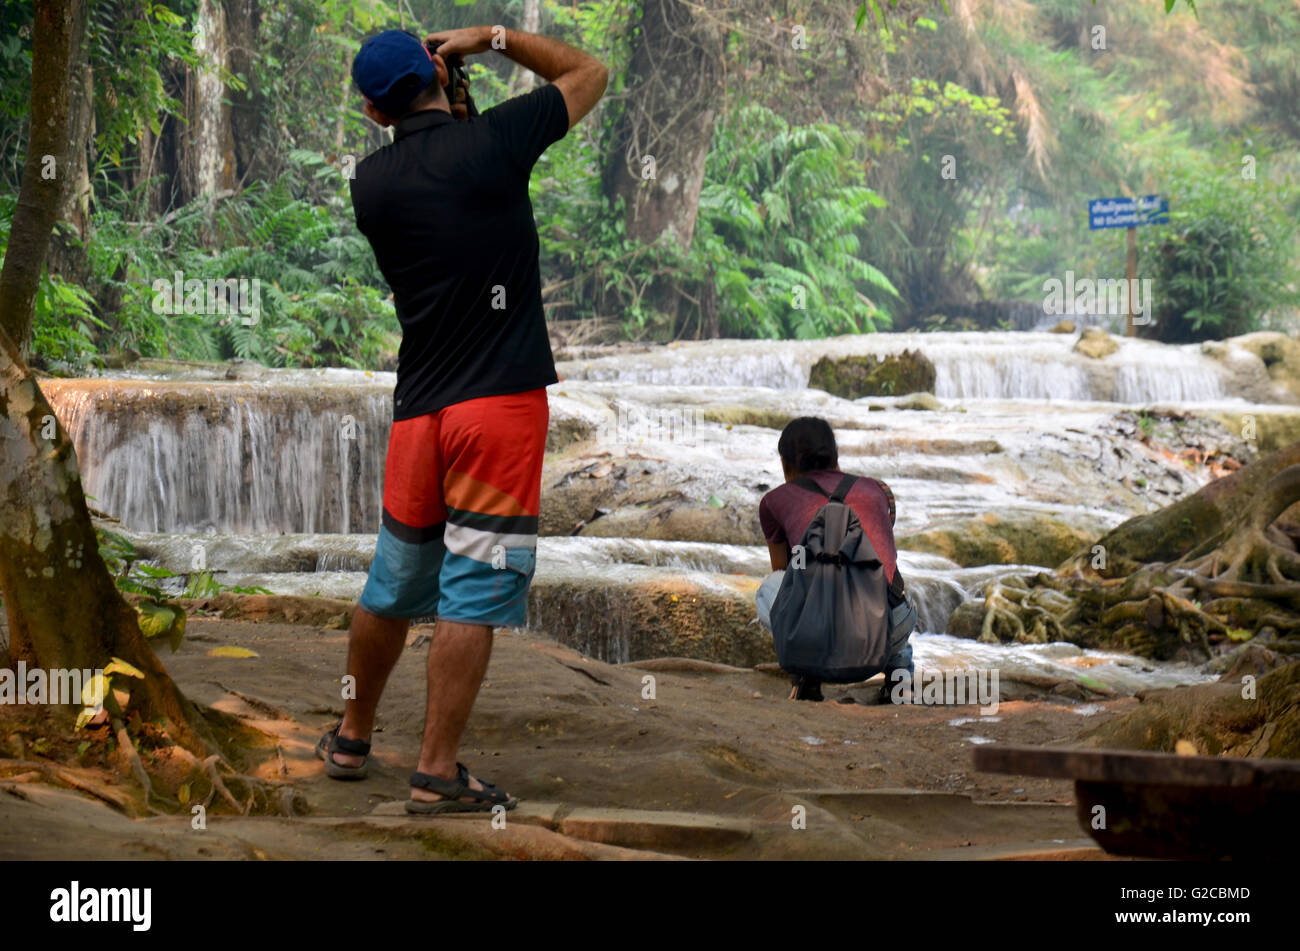 Traveller people travel and take photo with view of Kuang Si Falls or Tat Kuang Si Waterfalls on April 8, 2016 in - Stock Image